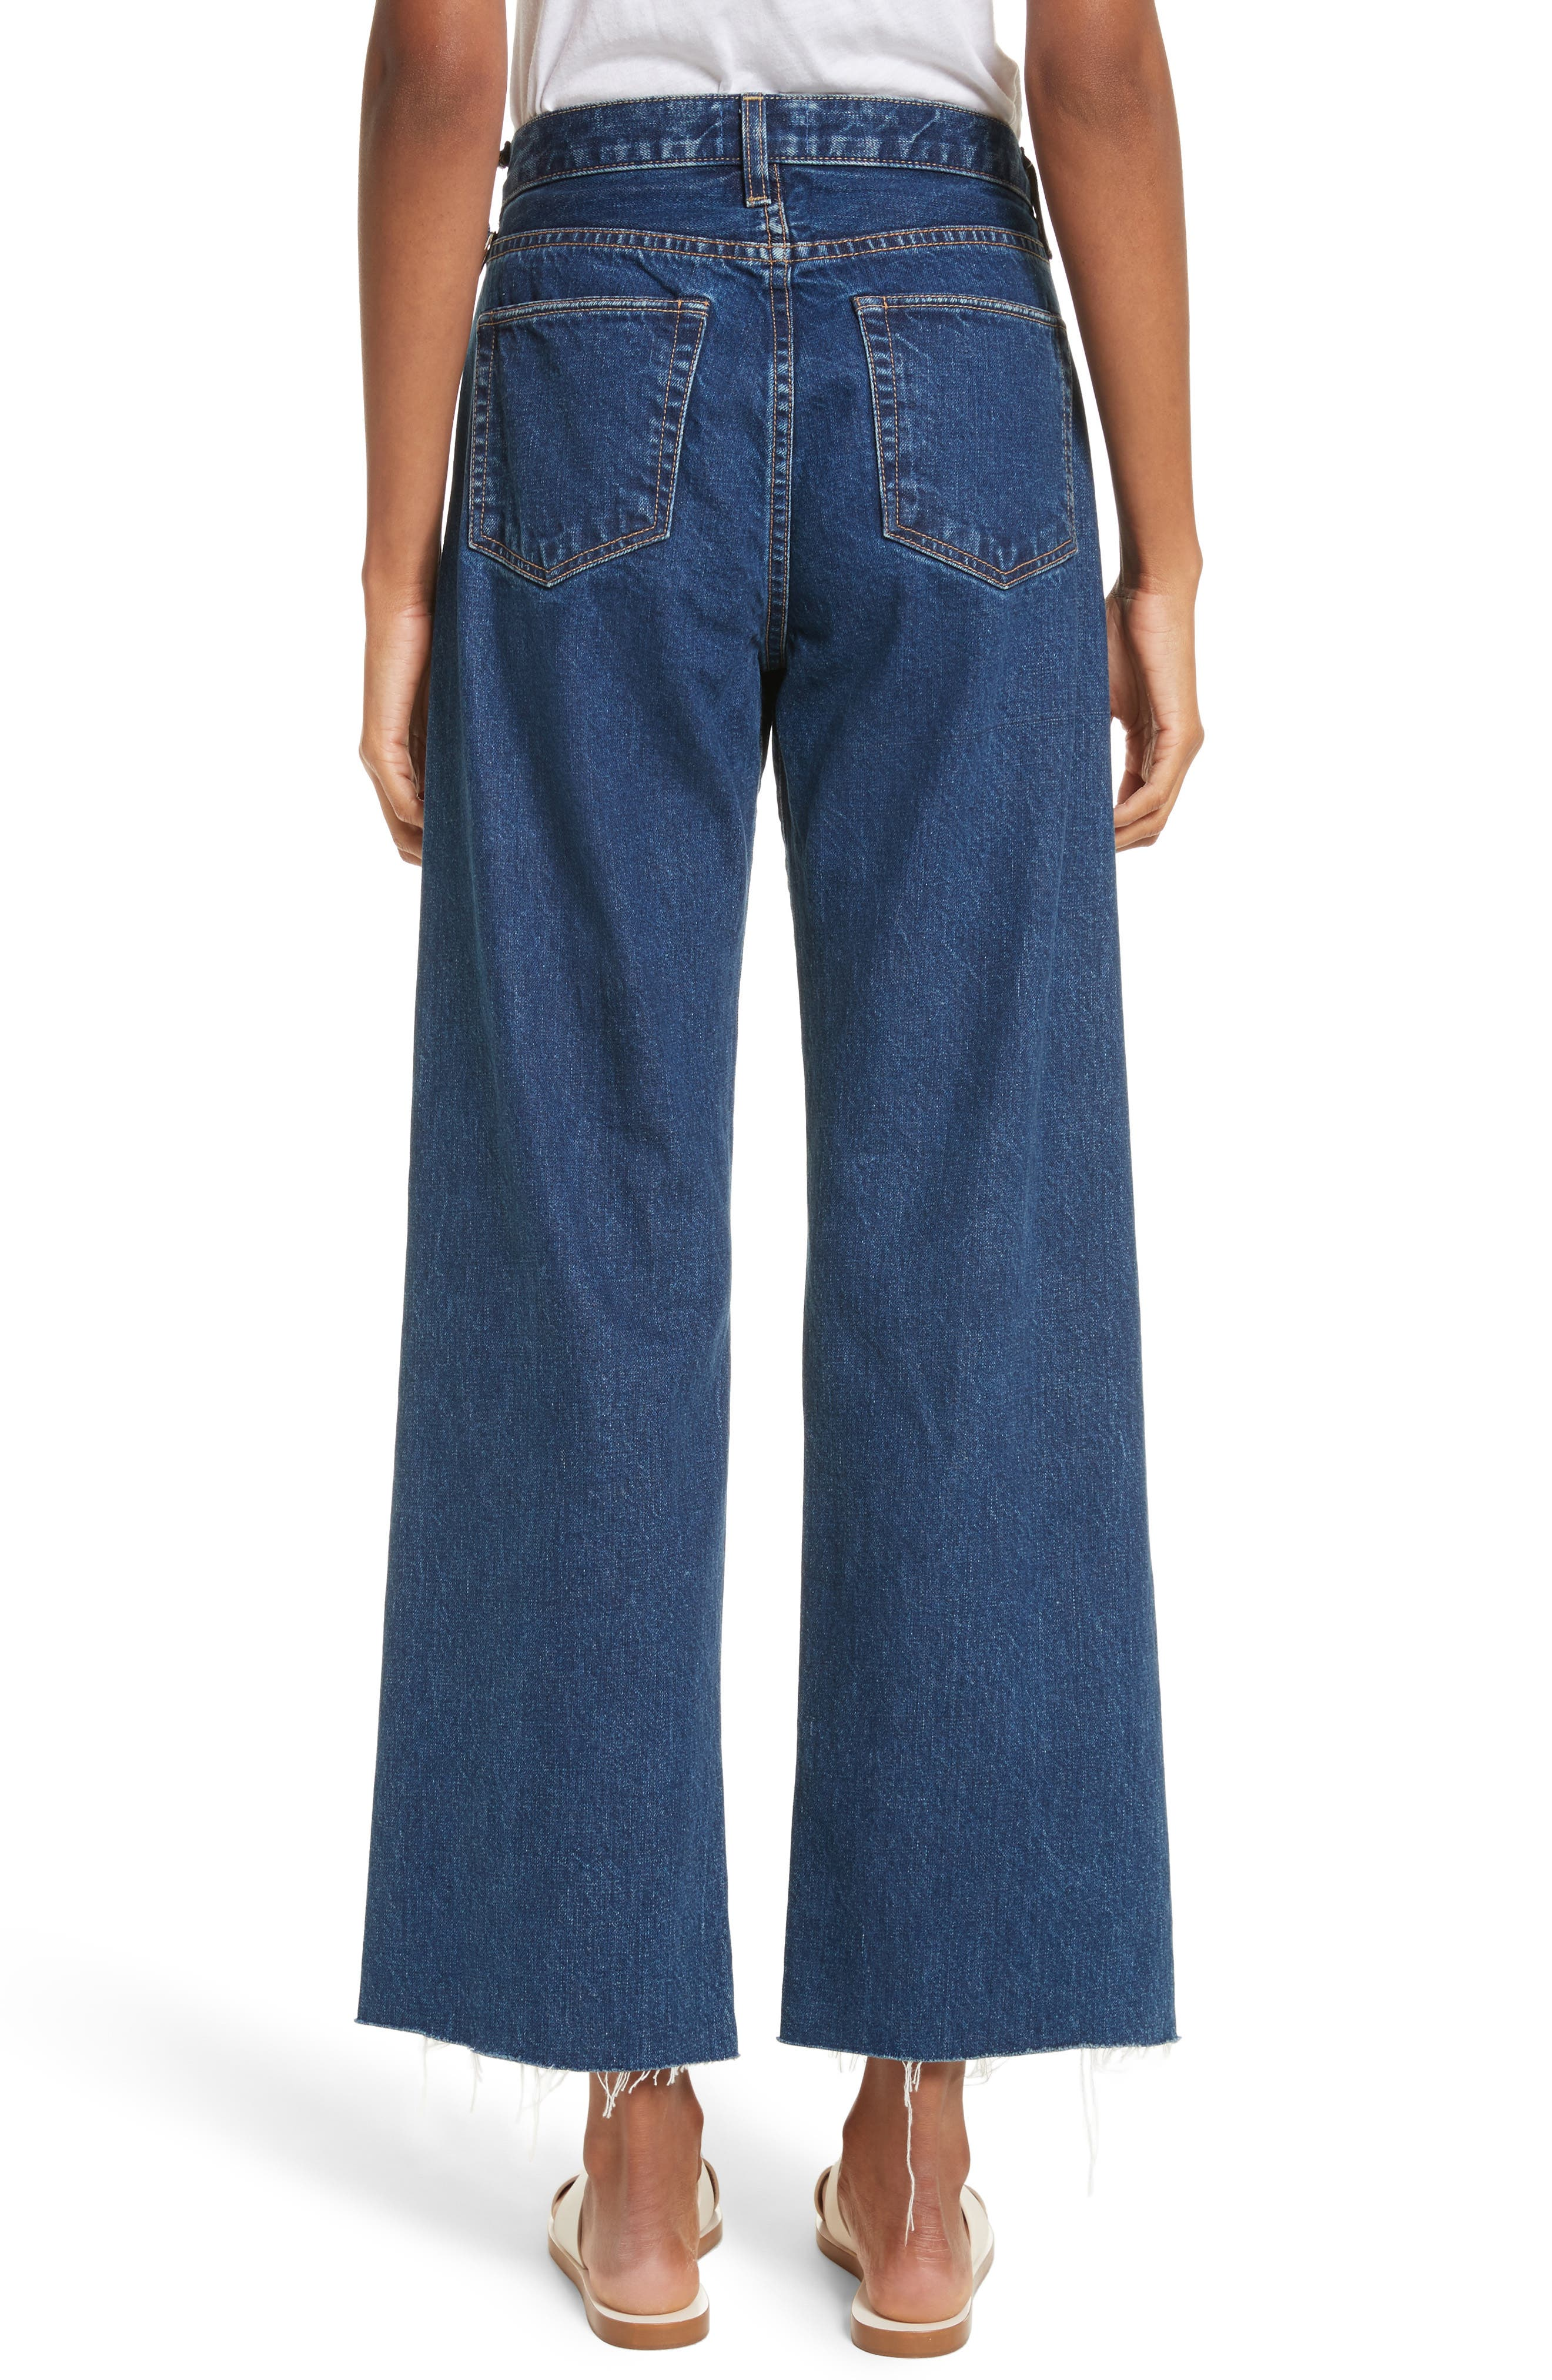 Toluca High Waist Wide Leg Jeans,                             Alternate thumbnail 2, color,                             Indigo